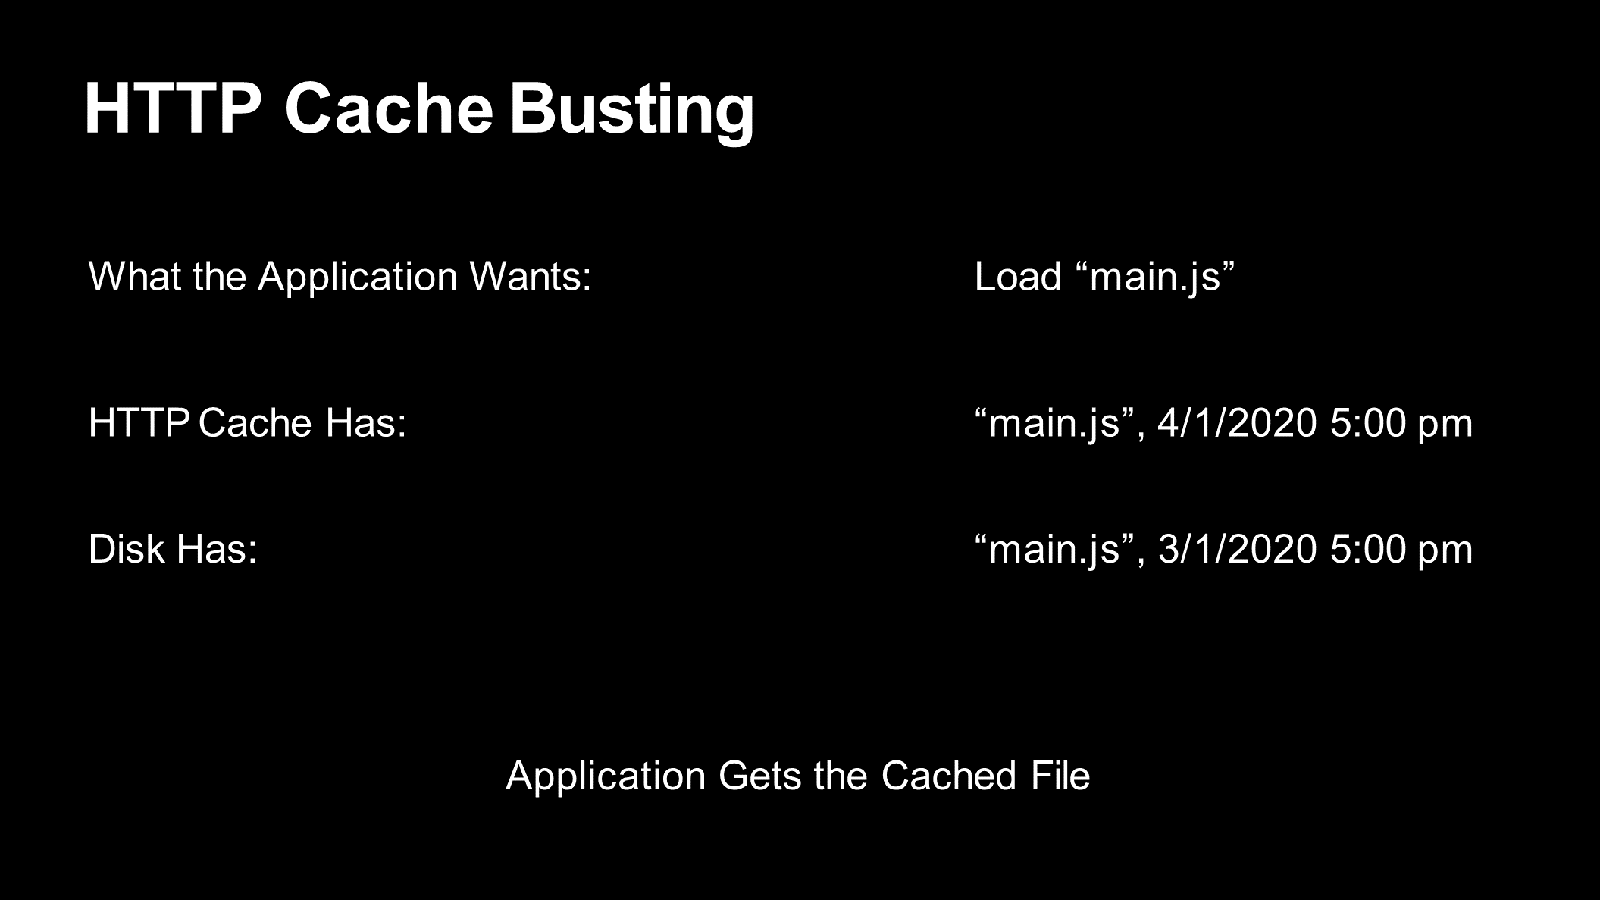 HTTP cache busting